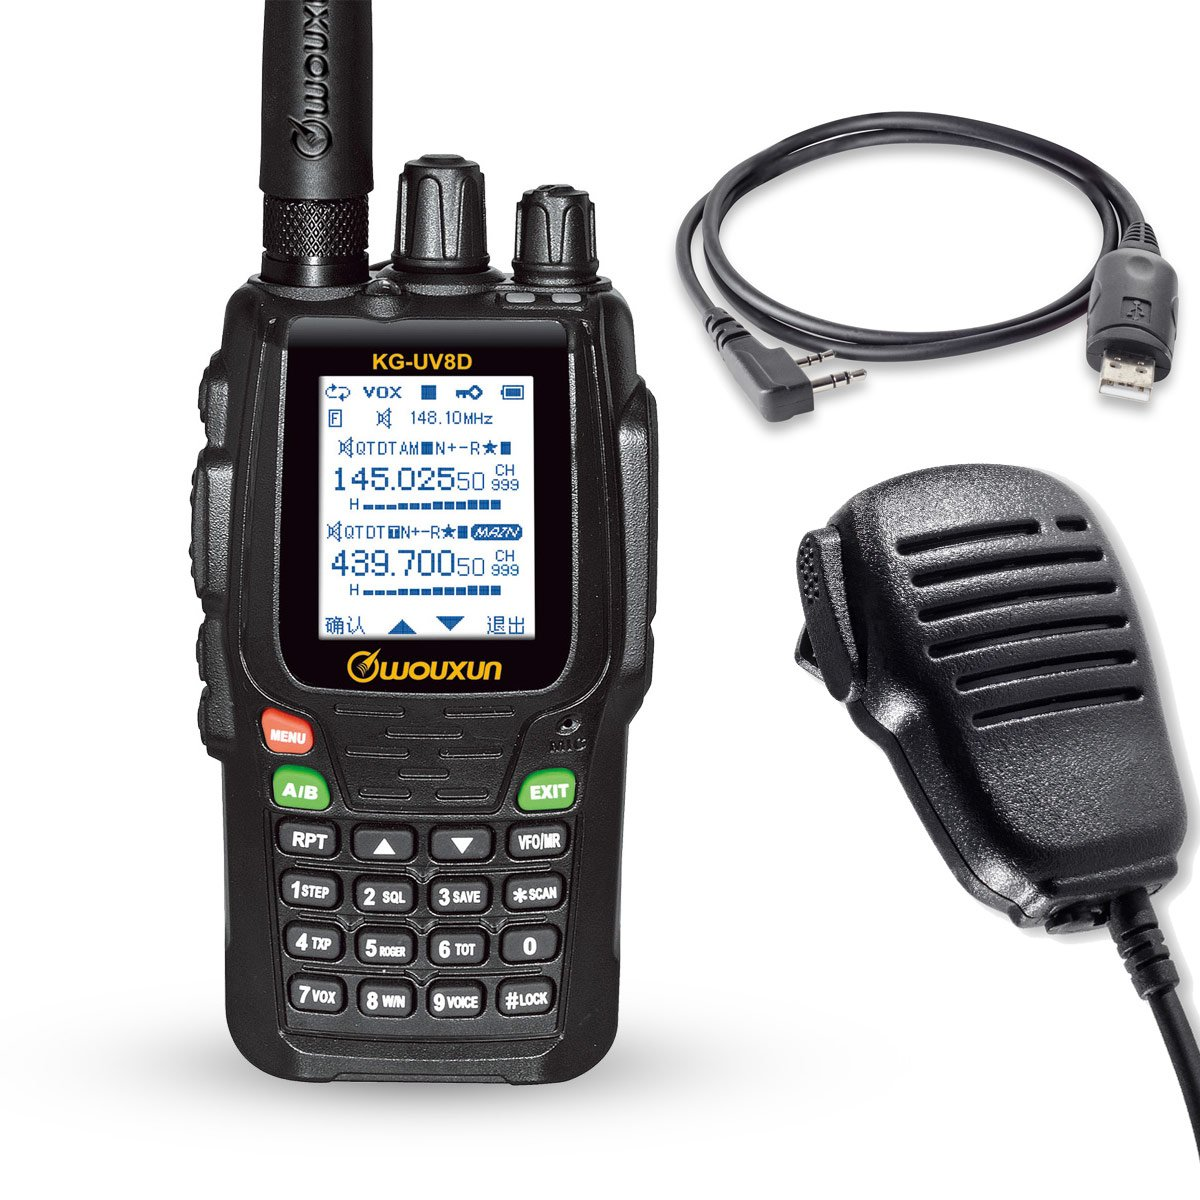 Wouxun KG-UV8D Doble Banda 134-174 / 400-520 MHz 999CH Repita Dos Ví as de Radio Walkie Talkie (Radio + Cable de programació n + Altavoz)